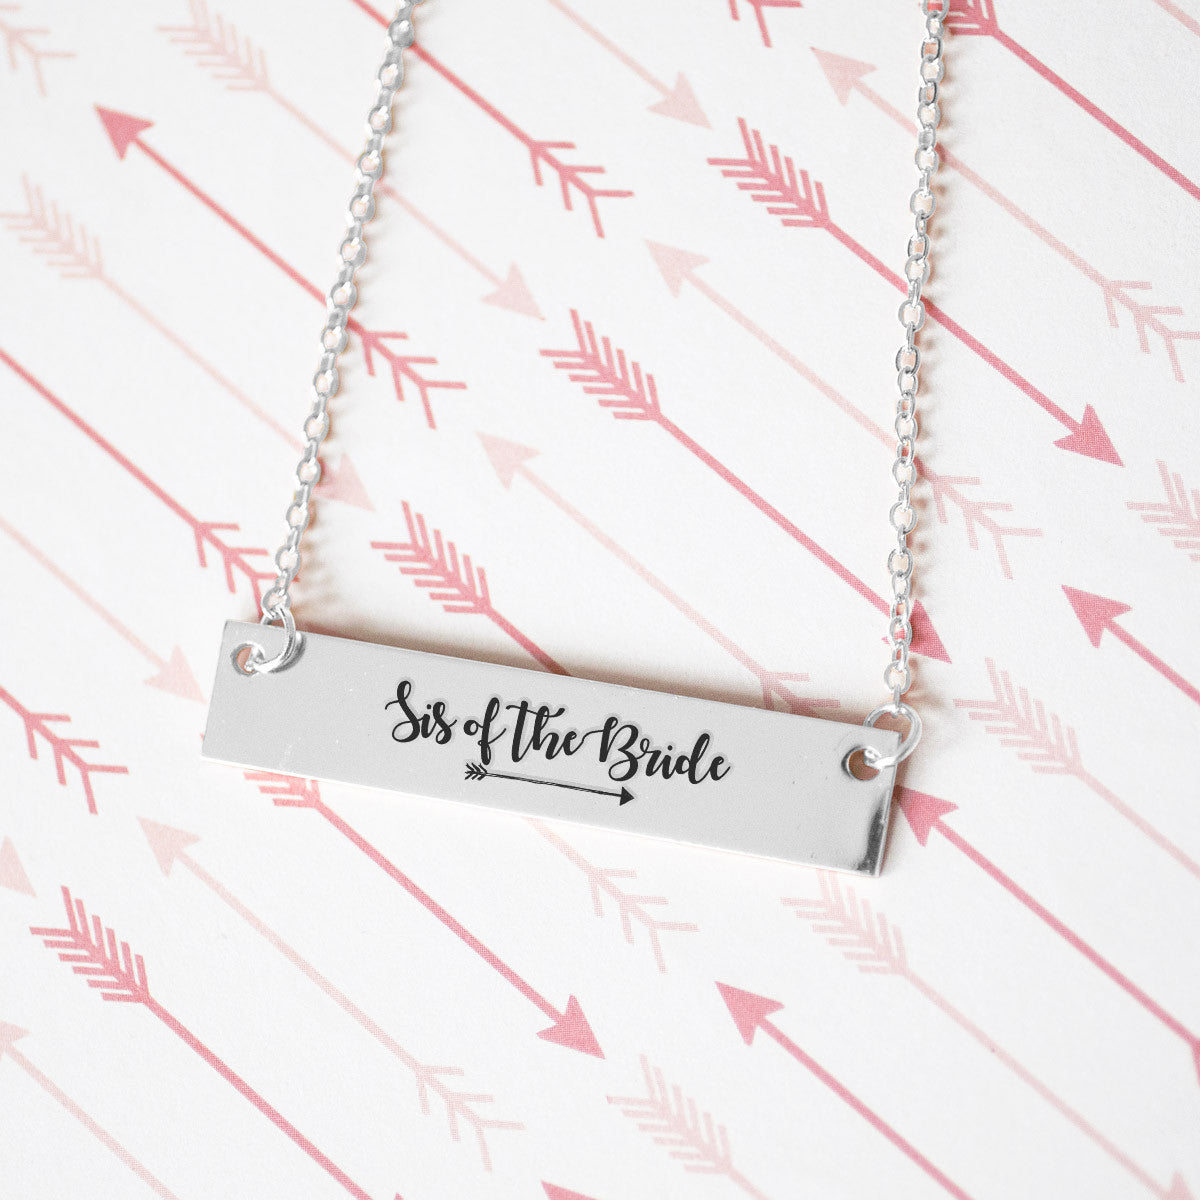 Sister of the Bride Gold / Silver Bar Necklace - Bridesmaid Gift - pipercleo.com